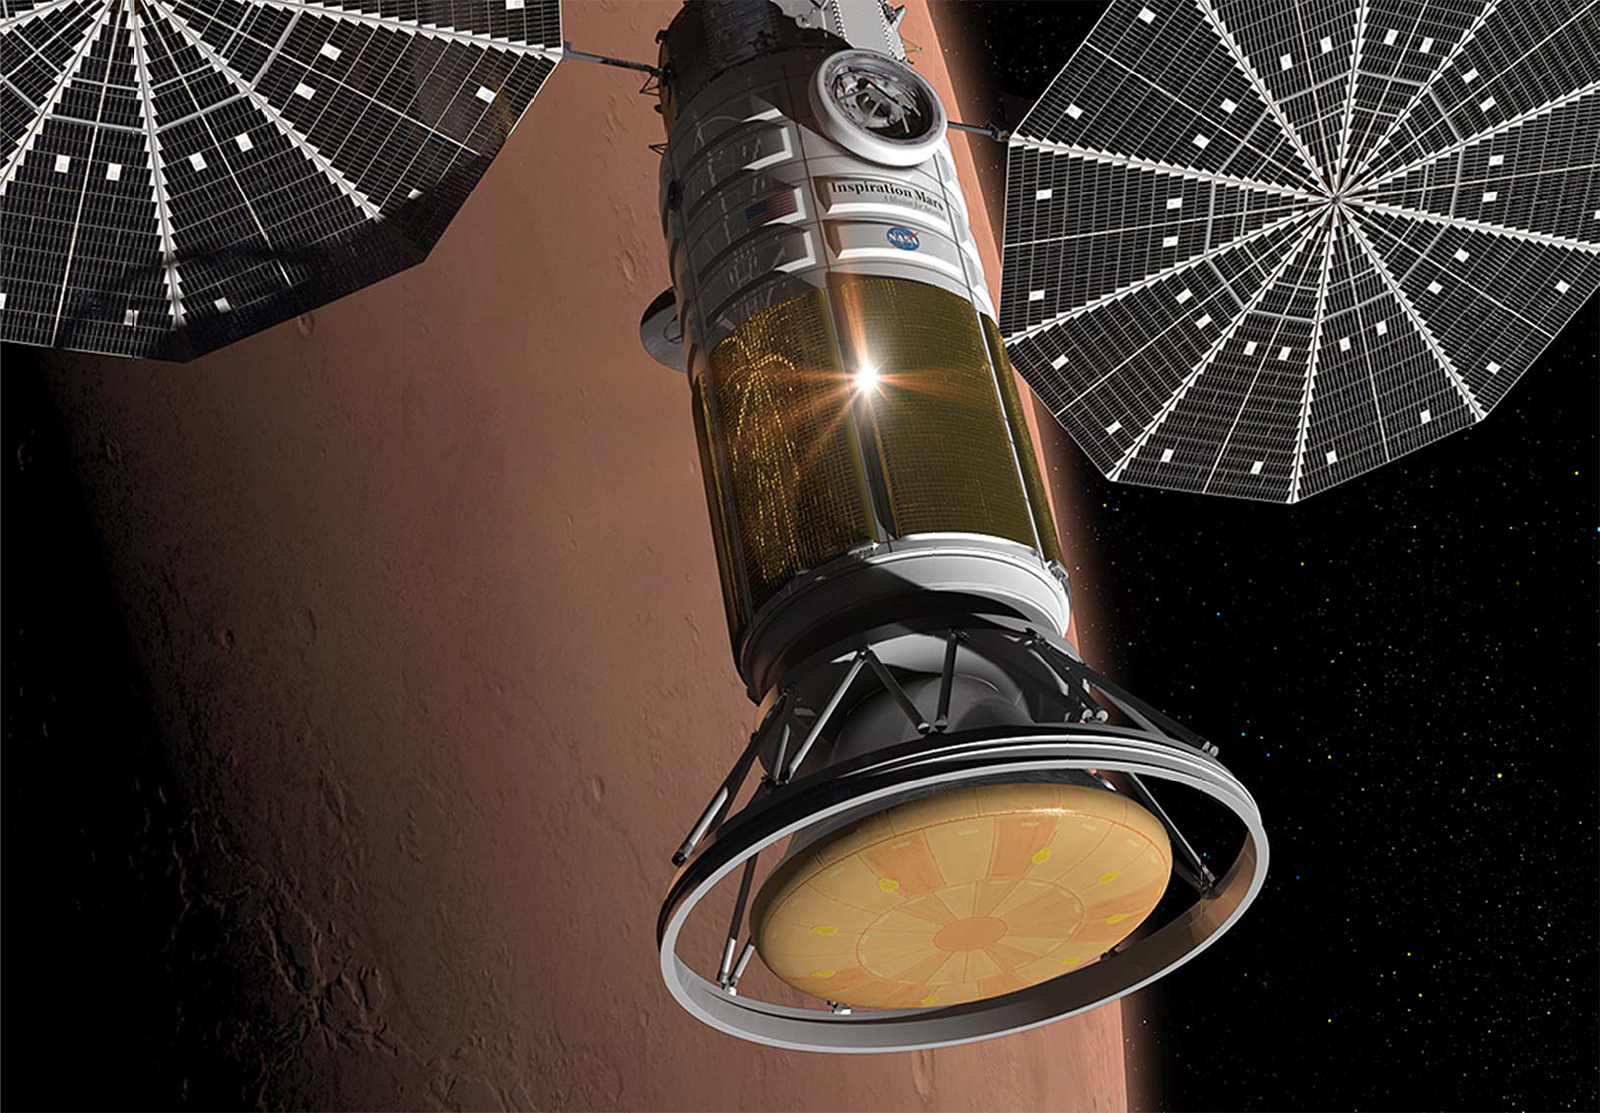 Details of 1st Private Manned Mars Flyby Mission Unveiled